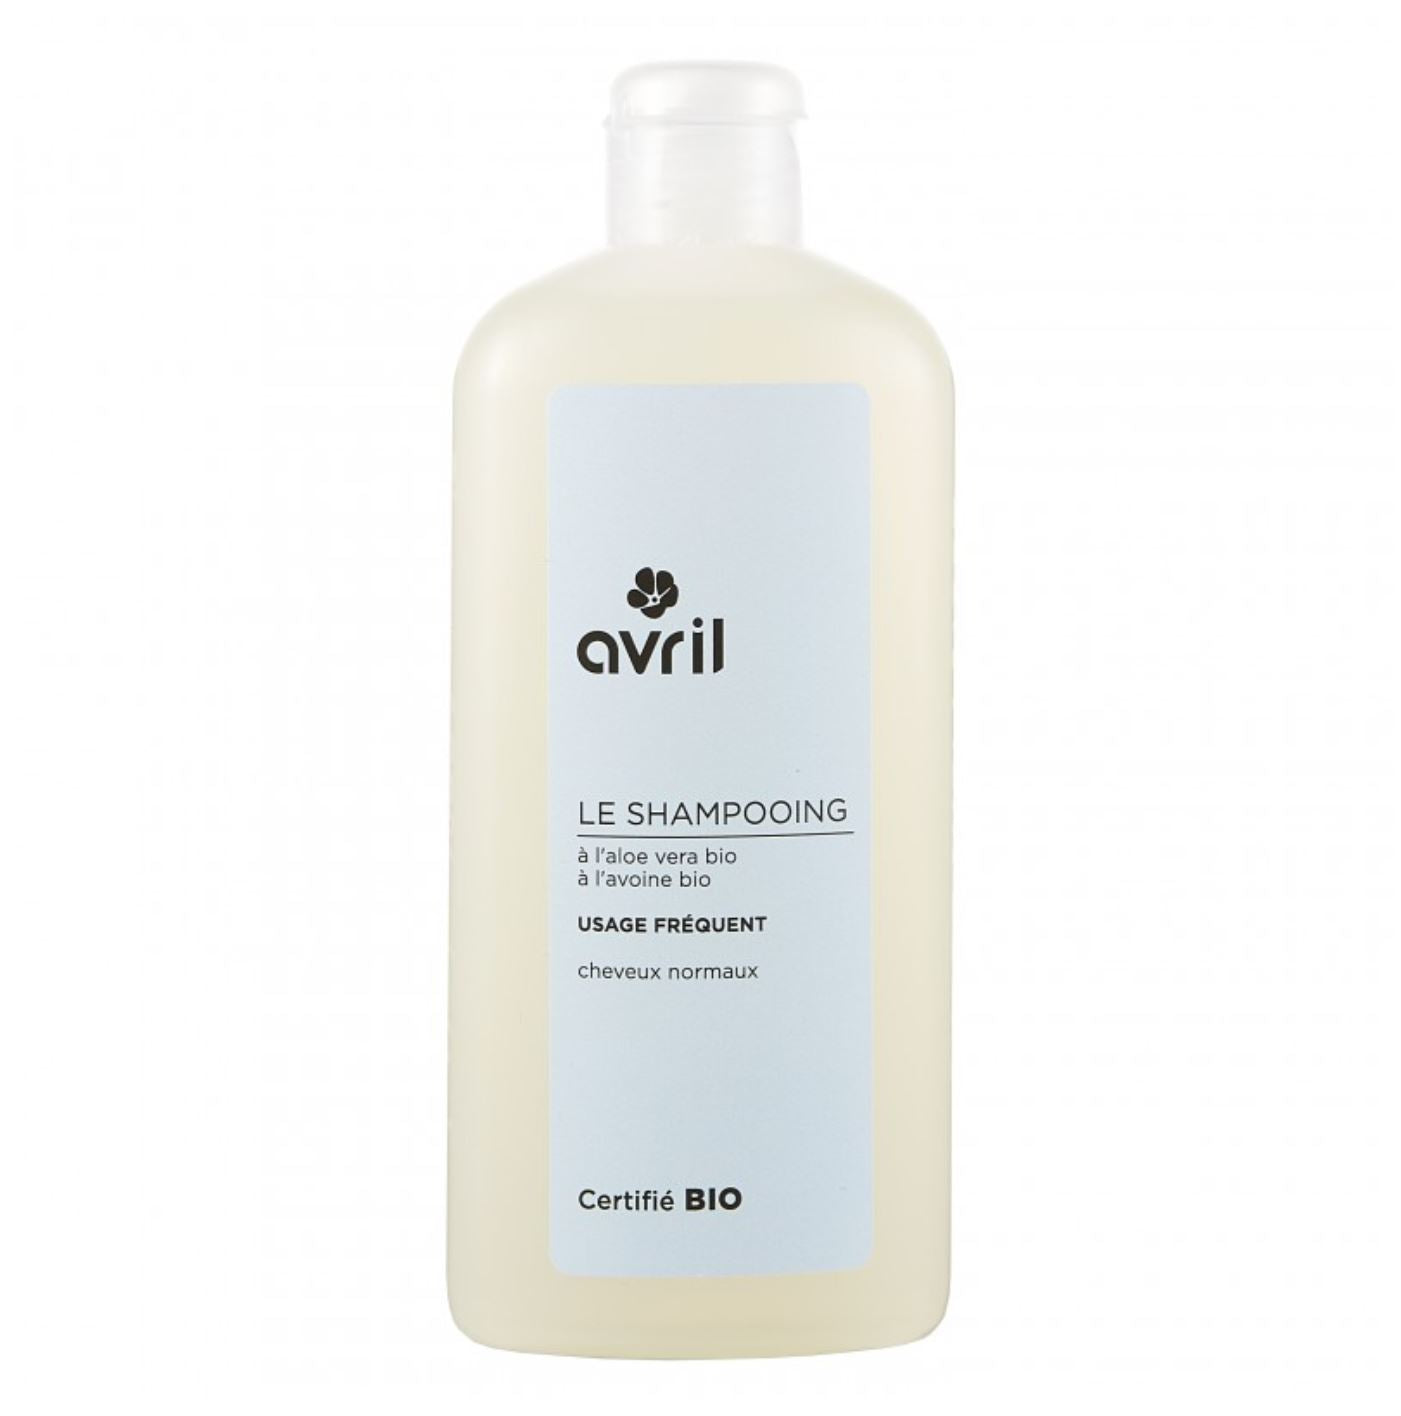 AVRIL SHAMPOO FREQUENT USE-NORMAL HAIR 250ml - certified organic by ECOCERT